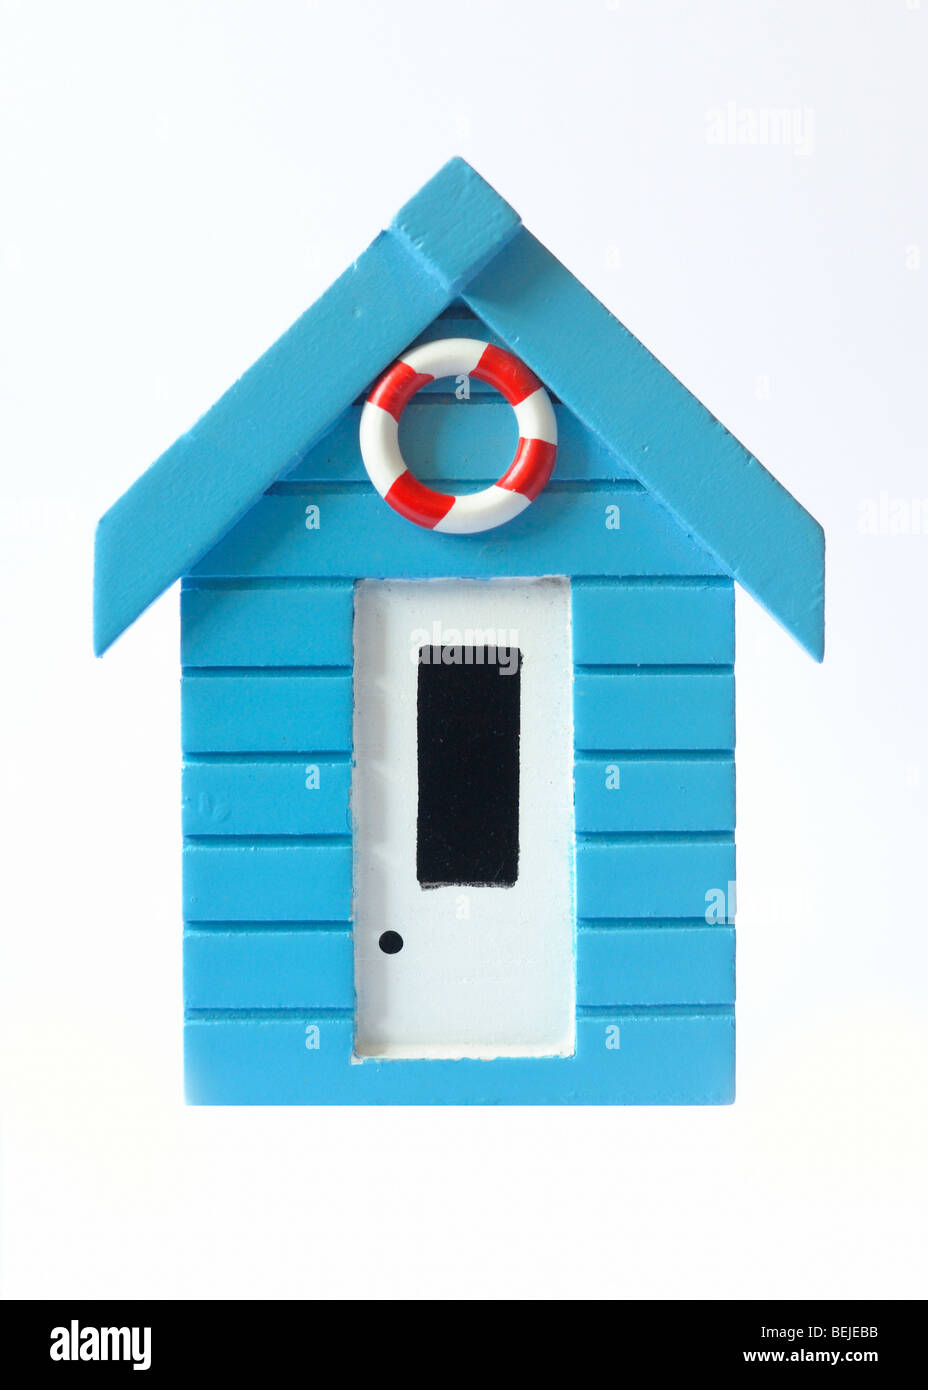 A wooden model of a beach hut - Stock Image